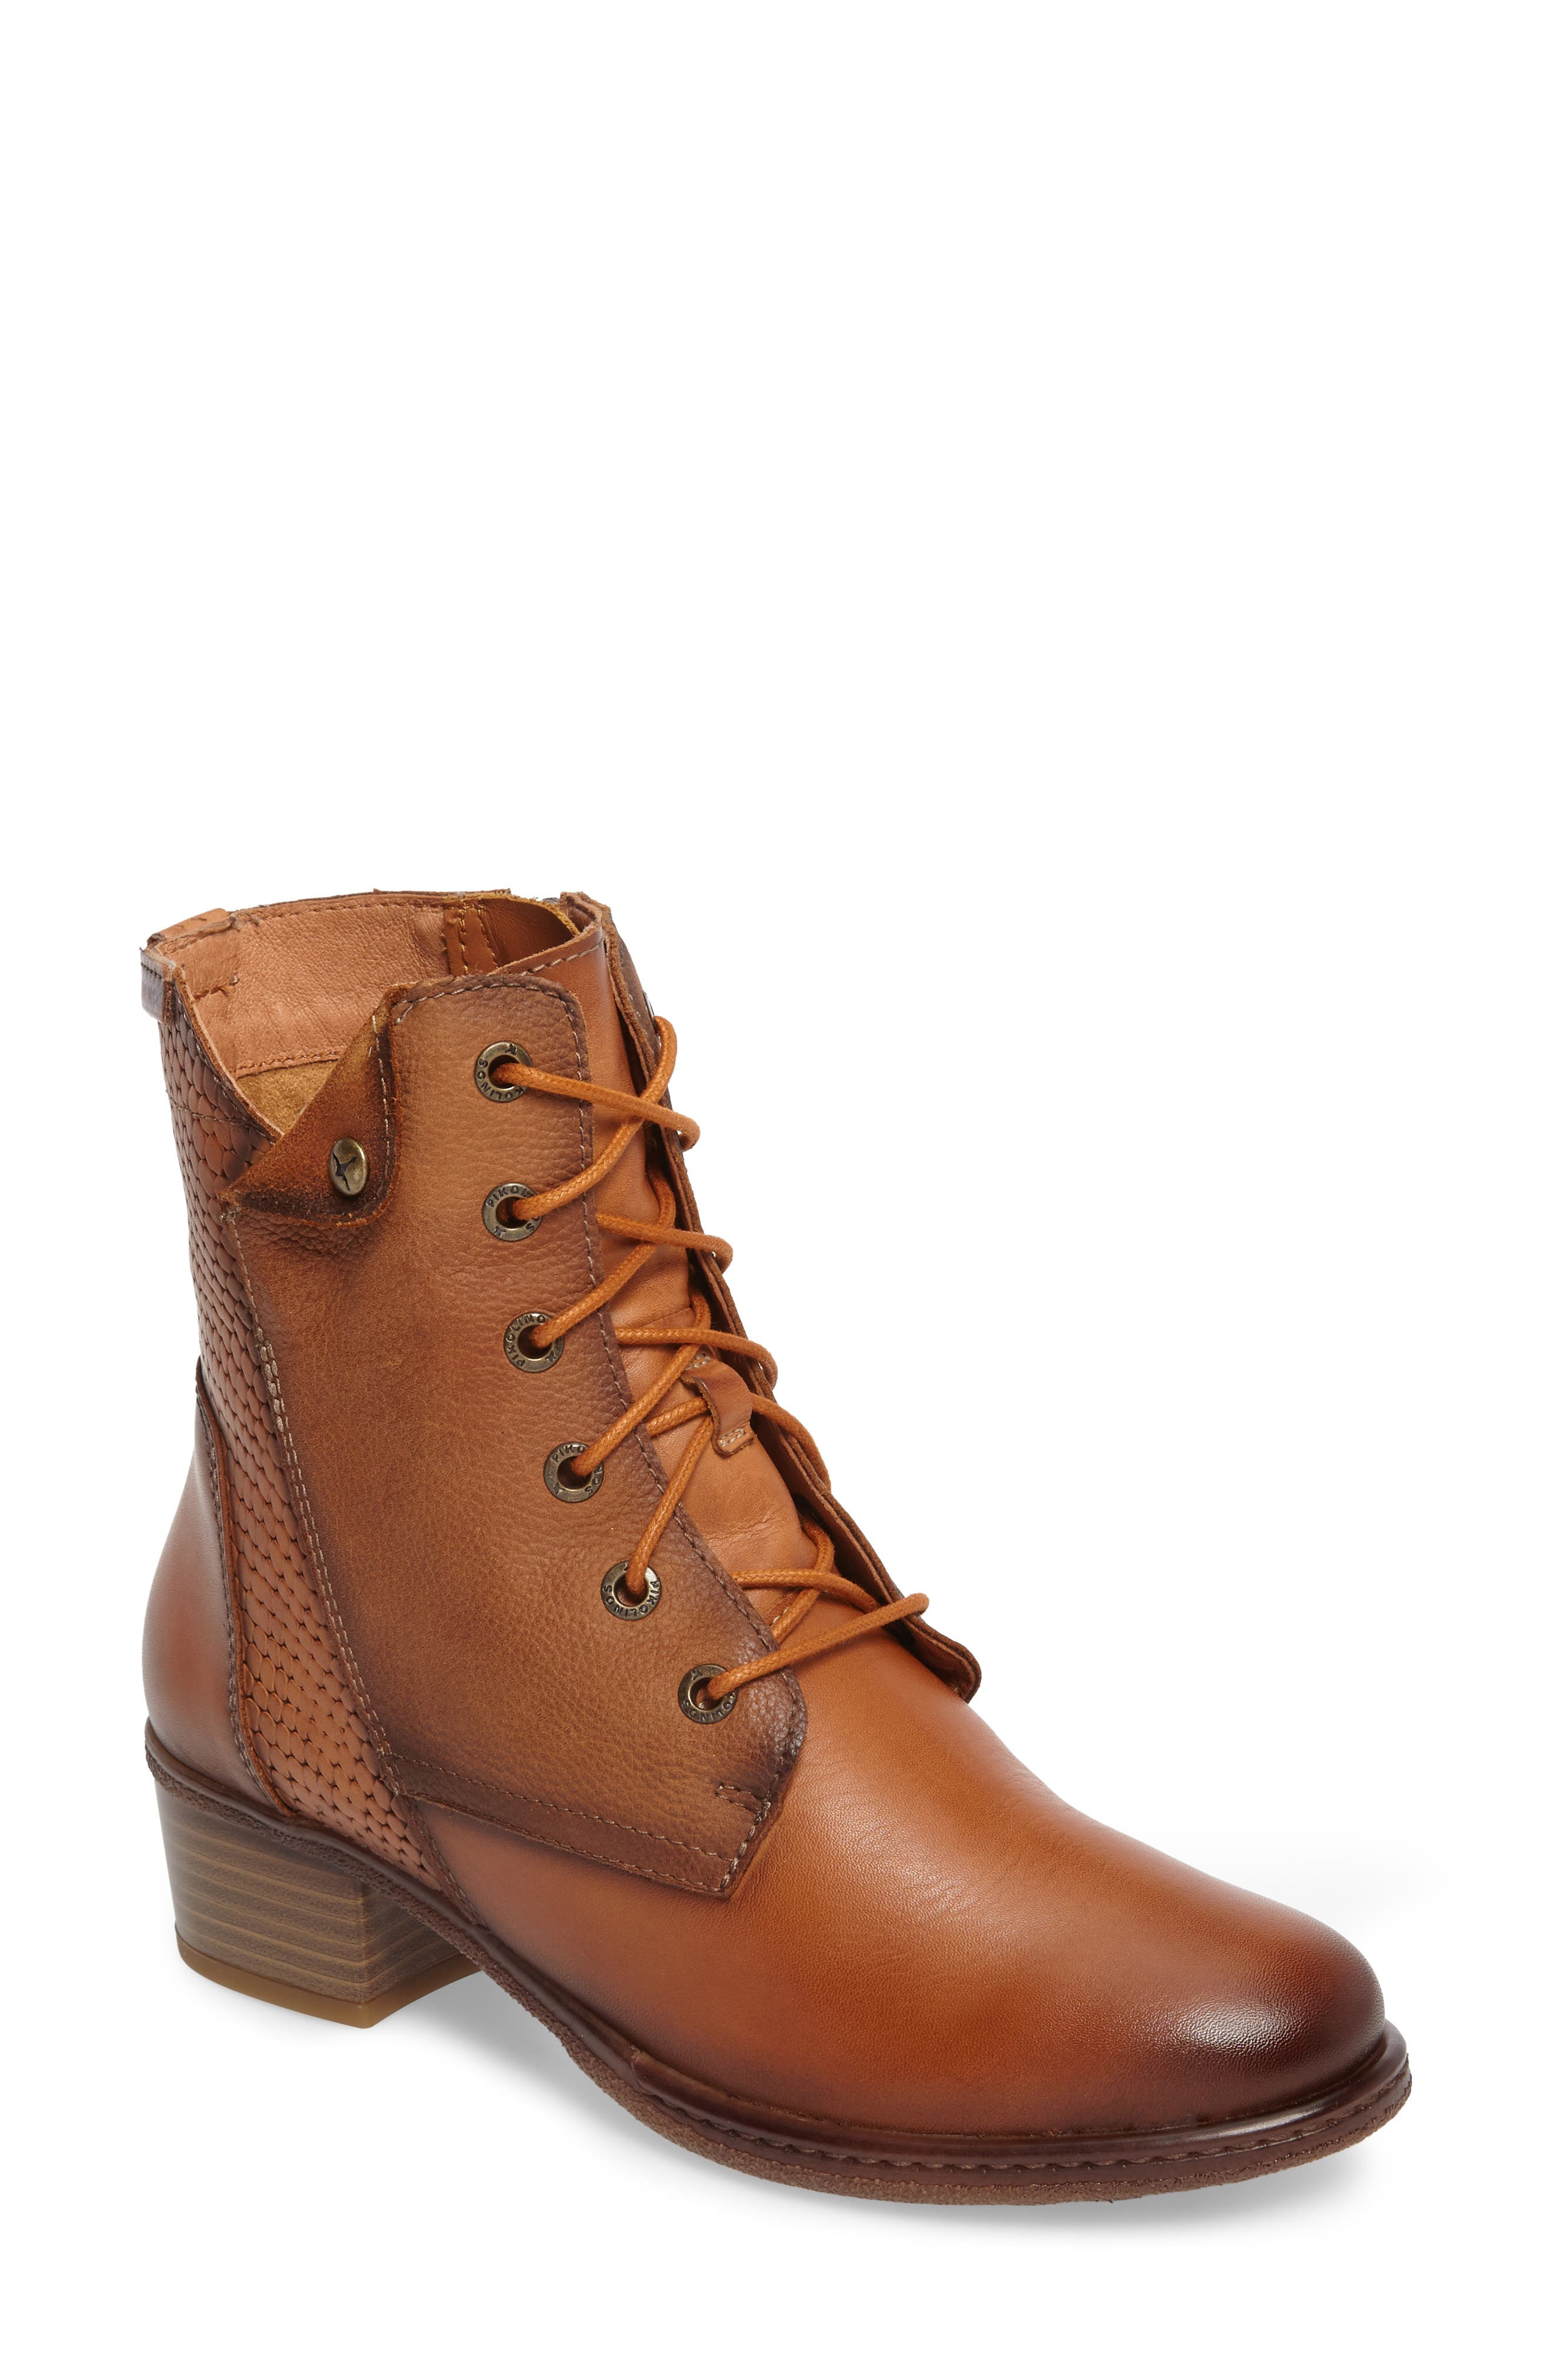 Alternate Image 1 Selected - PIKOLINOS Zaragoza Water Resistant Lace-Up Boot (Women)